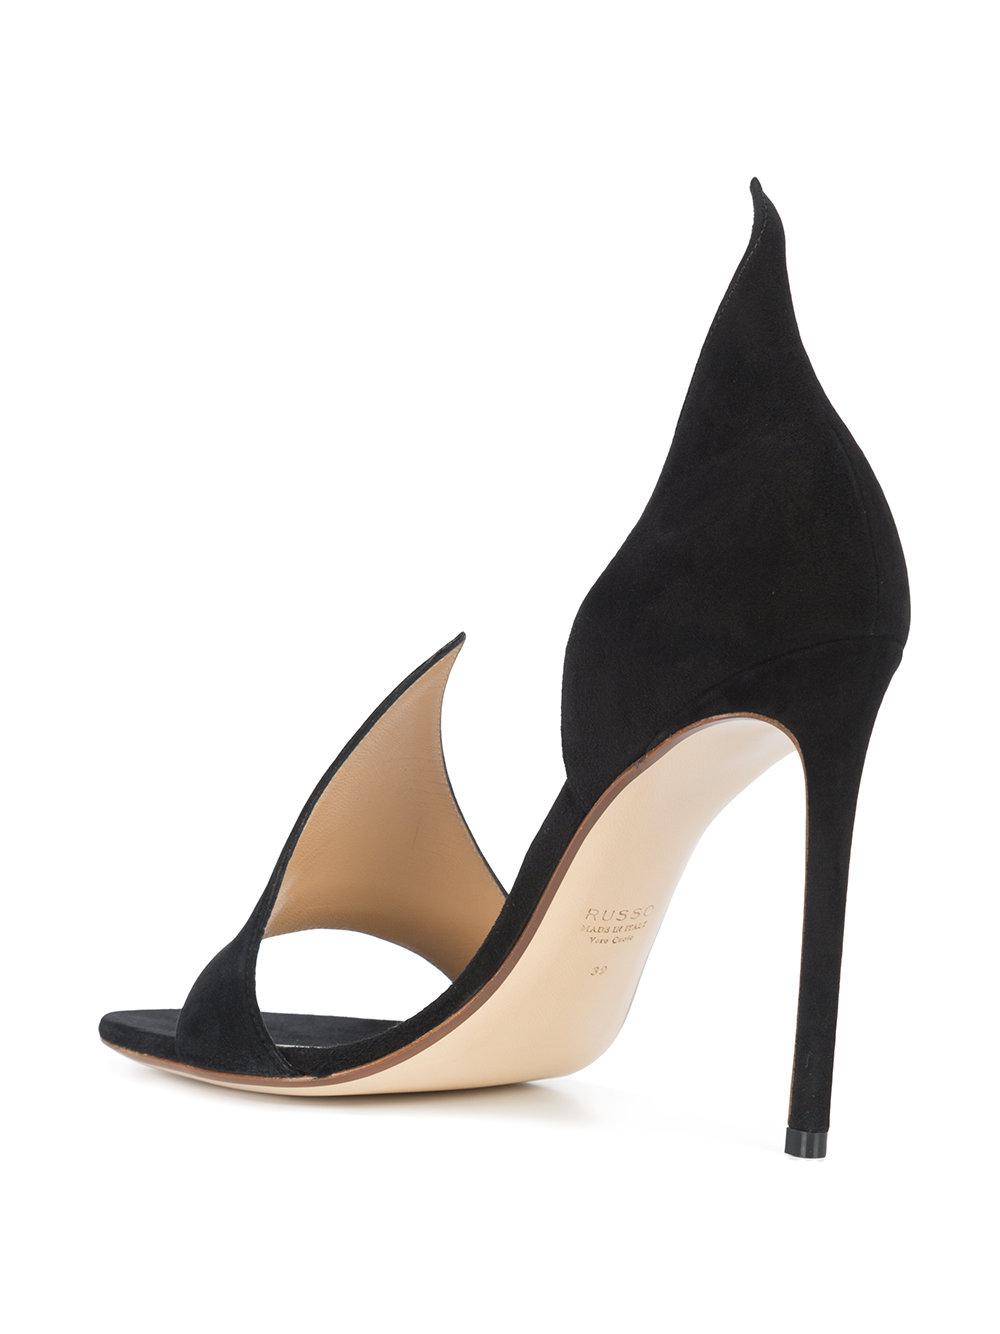 Cheap Sale Buy Great Deals Cheap Price Francesco Russo Pointed strap pumps Cheap Price Wholesale Price Buy Cheap Recommend Free Shipping Very Cheap 2tyDAyEz